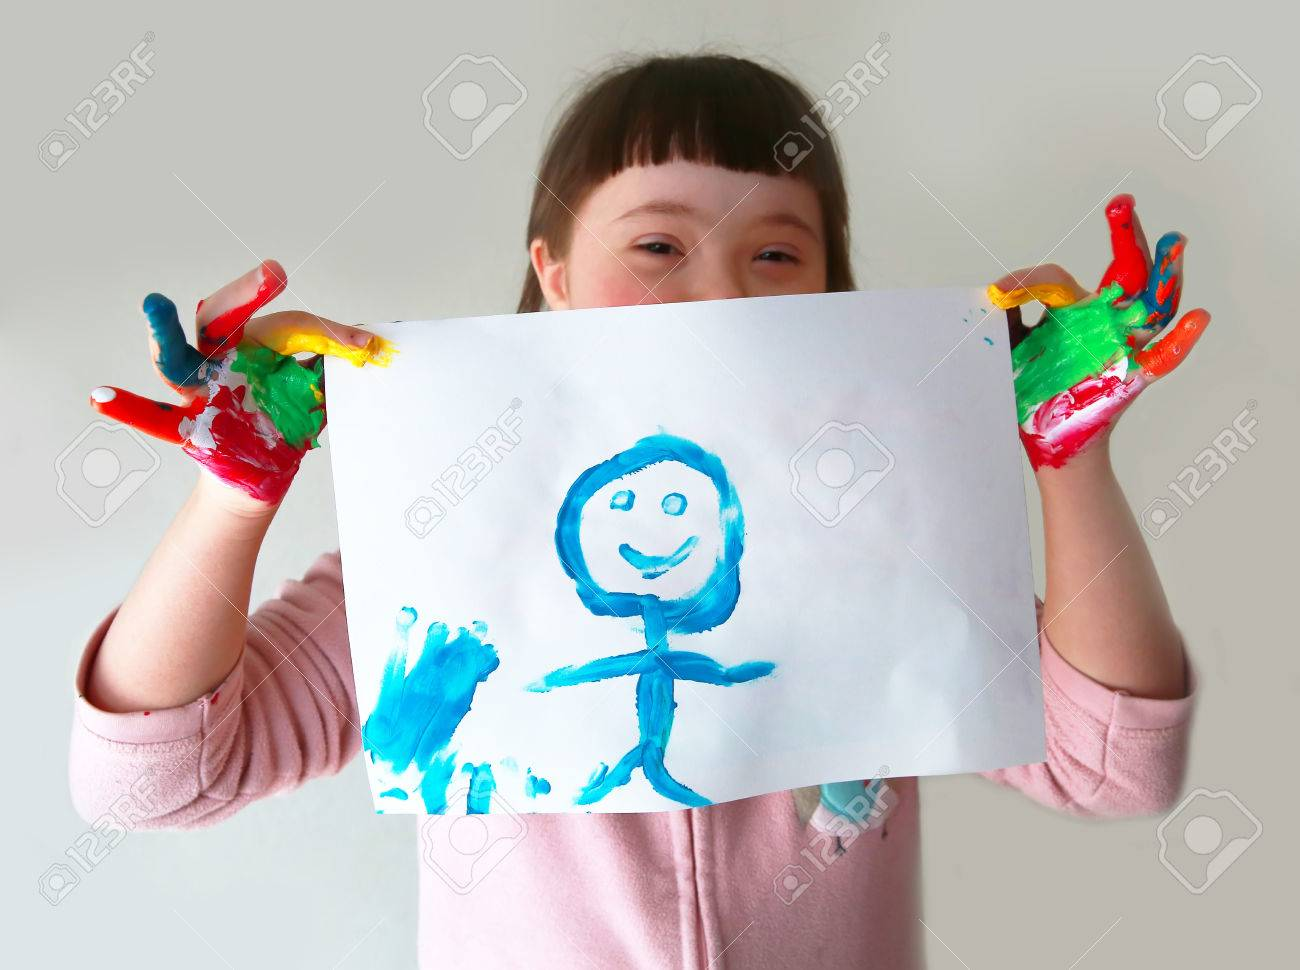 Cute girl with her painting Standard-Bild - 39593590